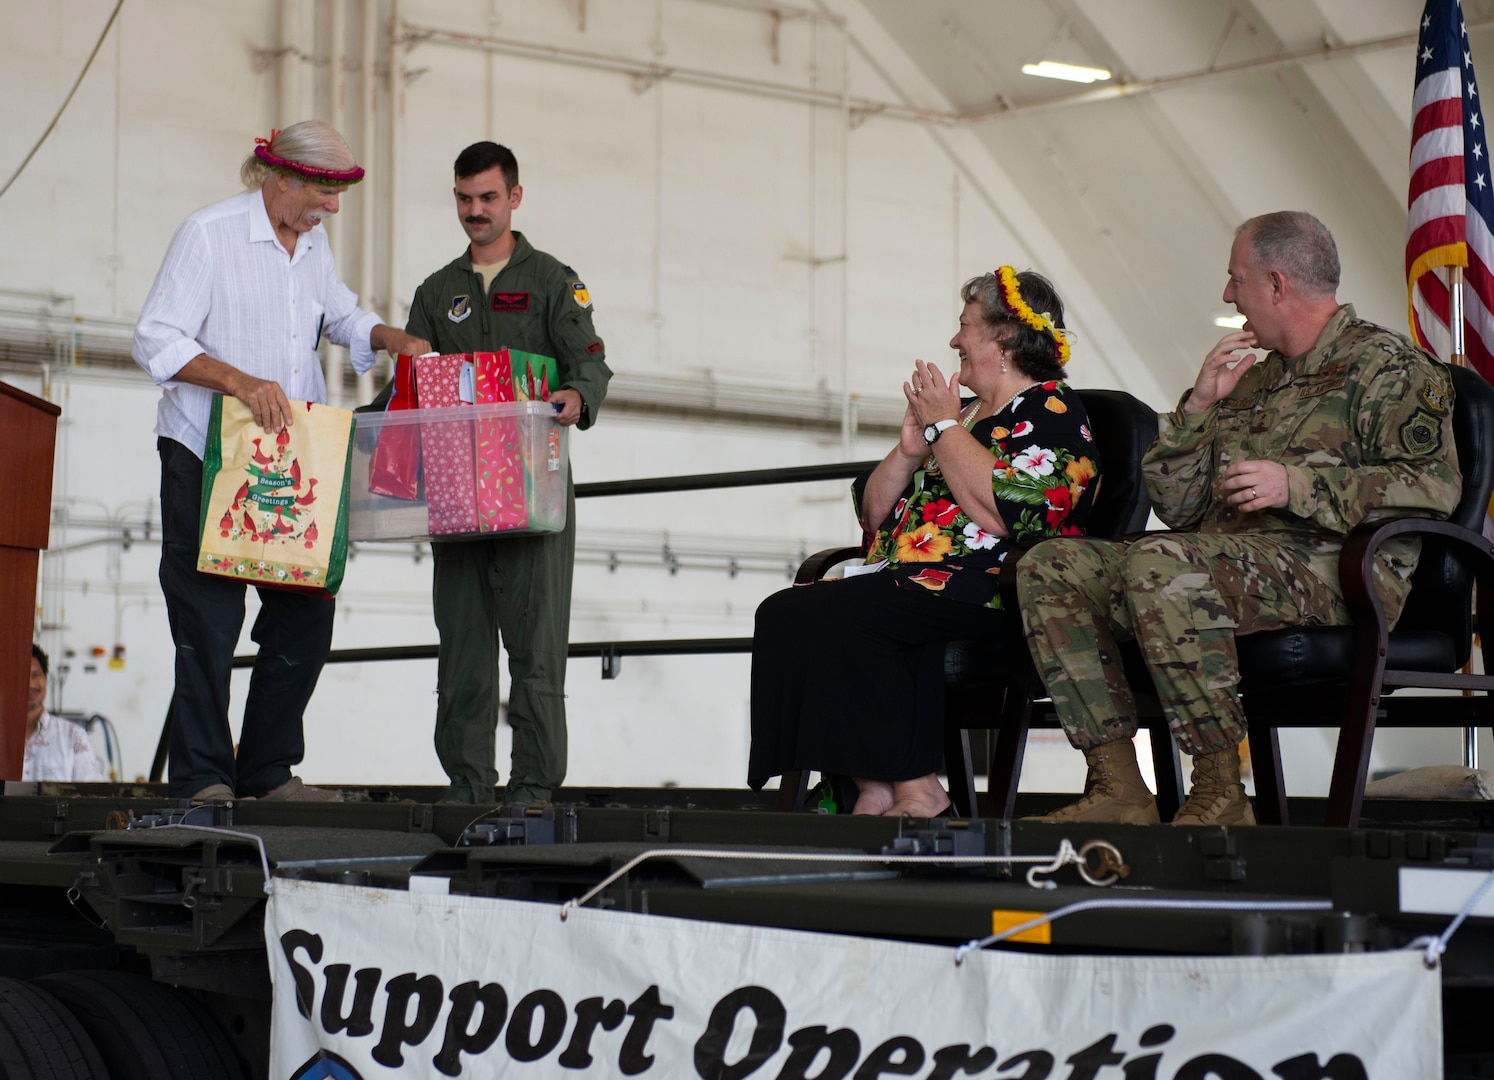 Bruce Best, researcher, University of Guam, far left, prepares to hand cultural gifts to the official party during the Operation Christmas Drop Push Ceremony at Andersen Air Force Base Dec. 10.  During the ceremony, the first of nearly 100 boxes of humanitarian goods was pushed into a C-130 before being delivered to 56 islands across the Commonwealth of the Northern Mariana Islands, the Federated States of Micronesia and the Republic of Palau.